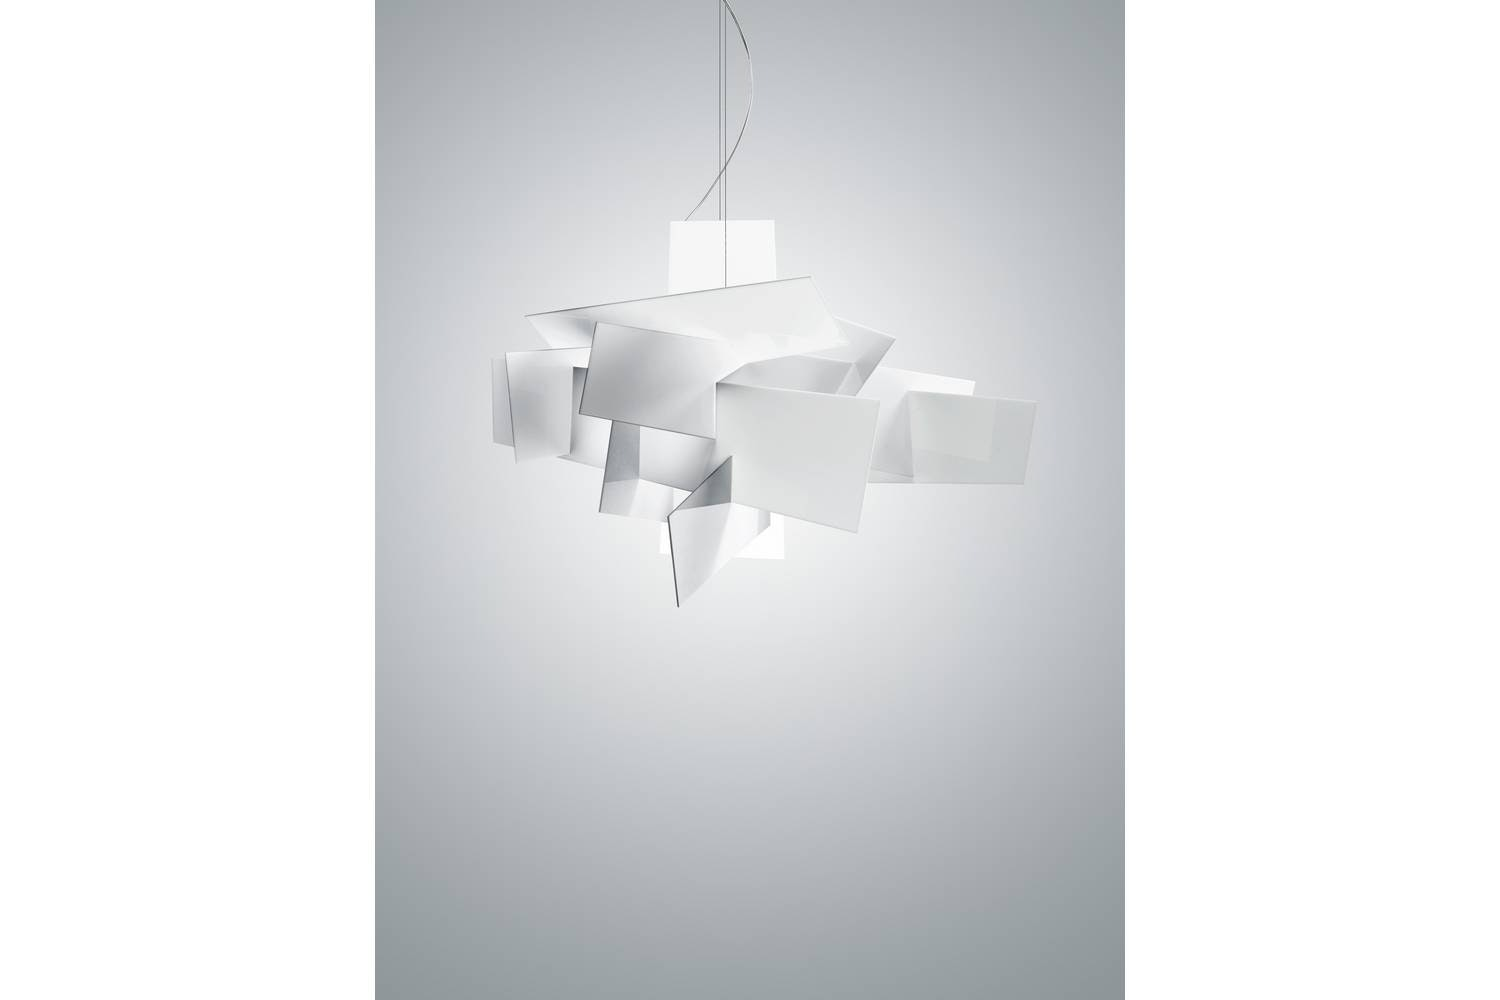 Big Bang LED Suspension Lamp by Enrico Franzolini & Vicente Garcia Jimenez for Foscarini